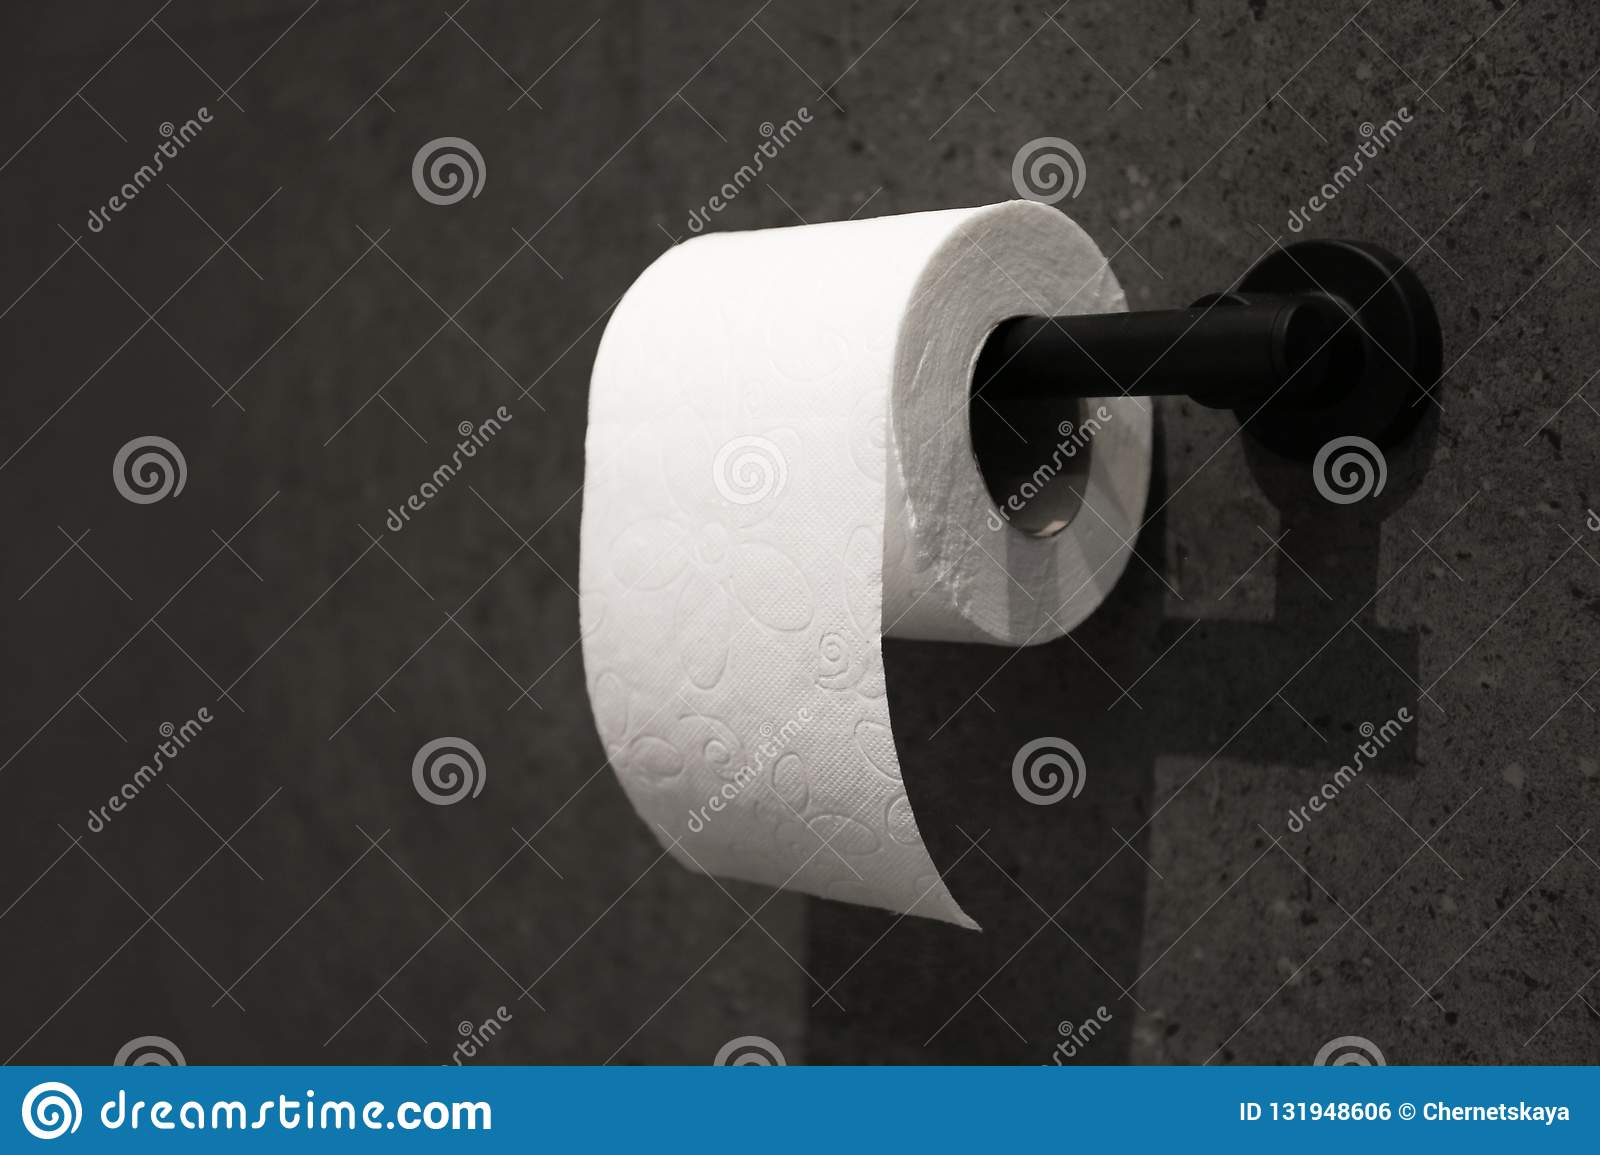 Toilet paper holder with roll mounted